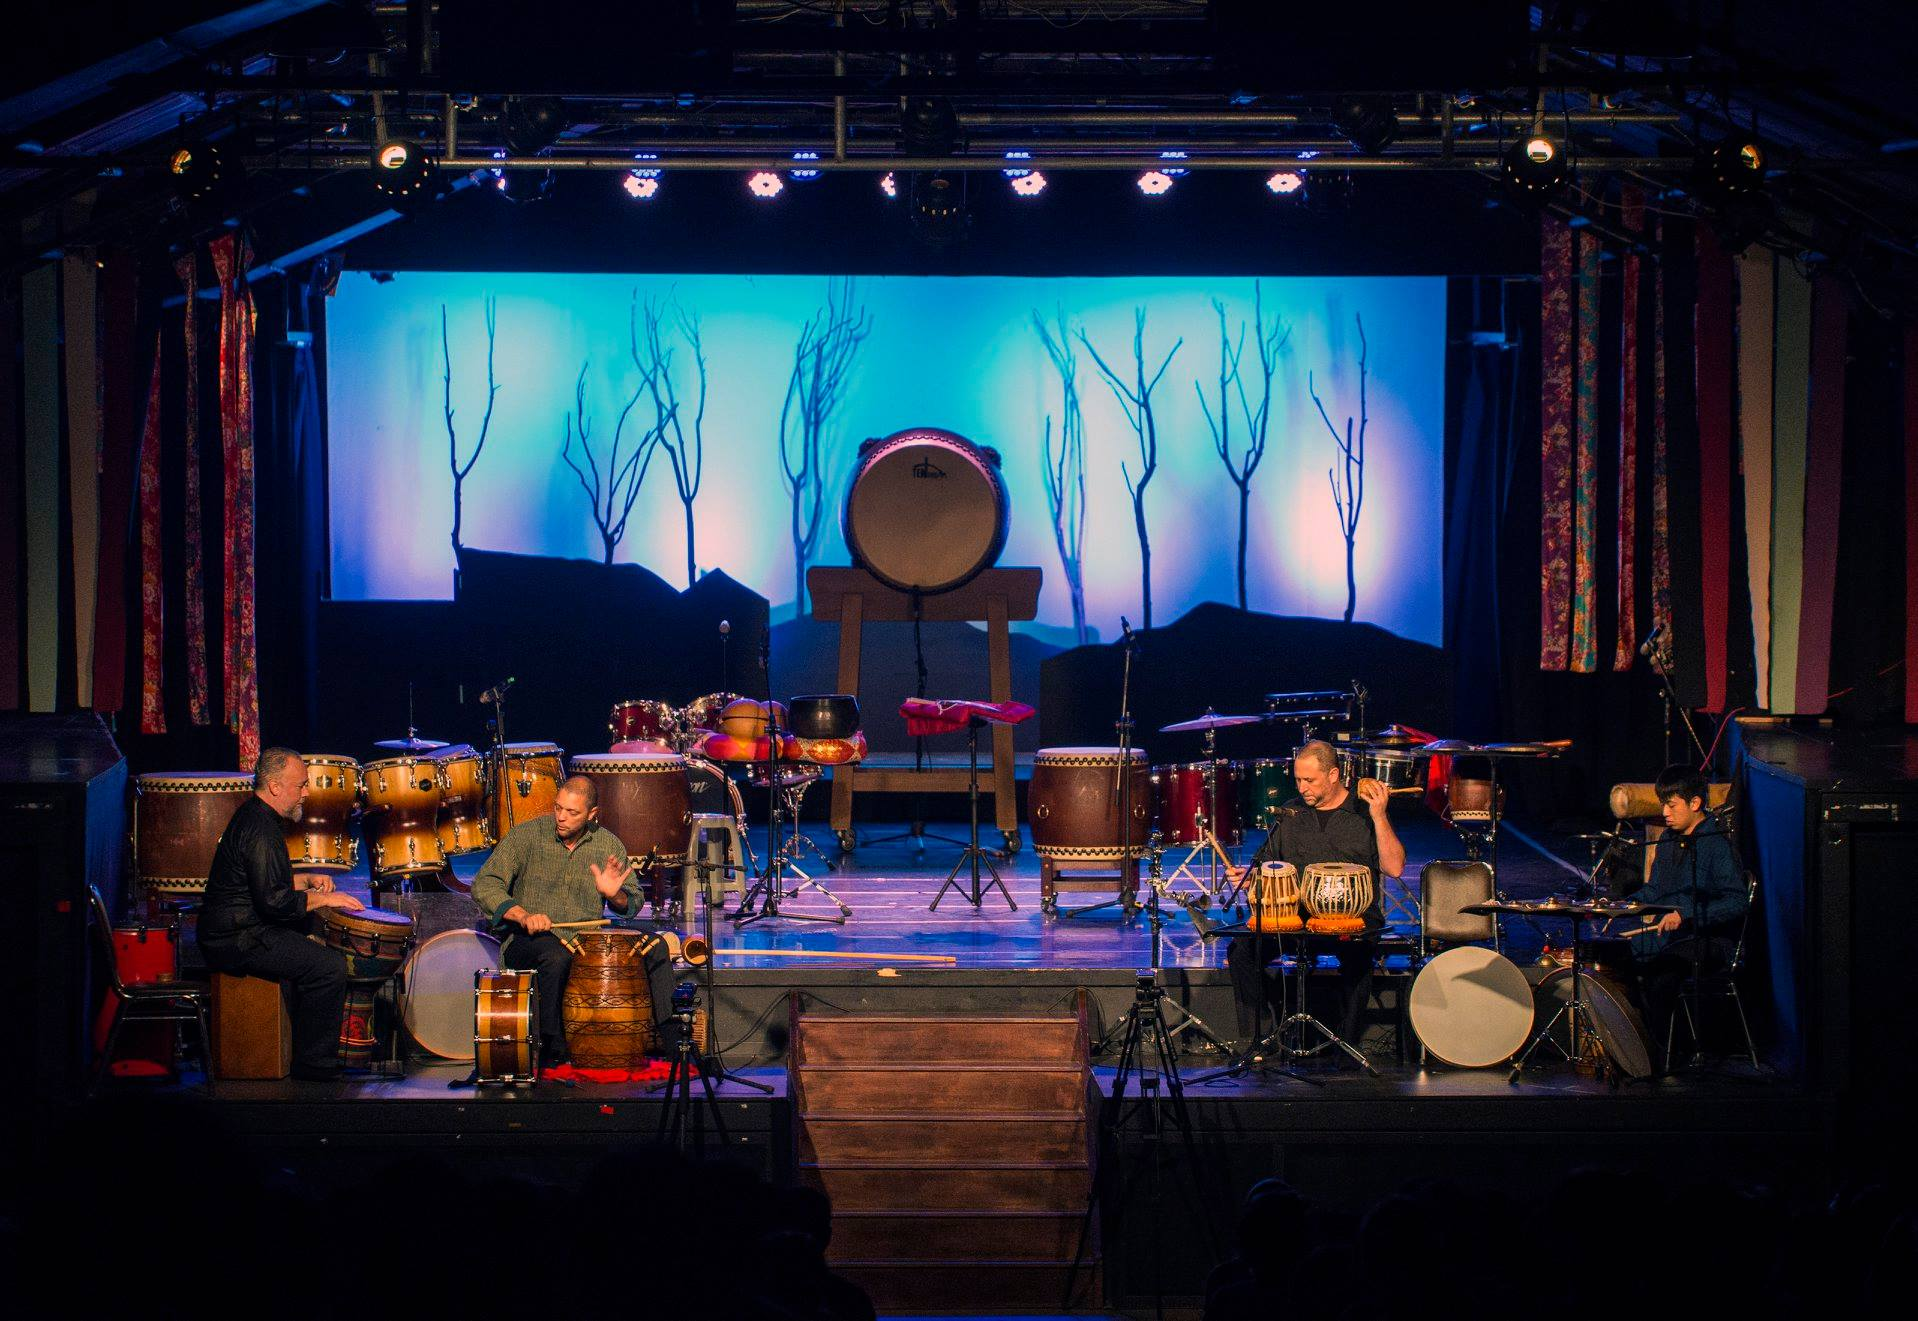 Hands On'Semble & Ten Drum Concert at Ten Drum Village, Tainan Taiwan.  August 26th, 2018.